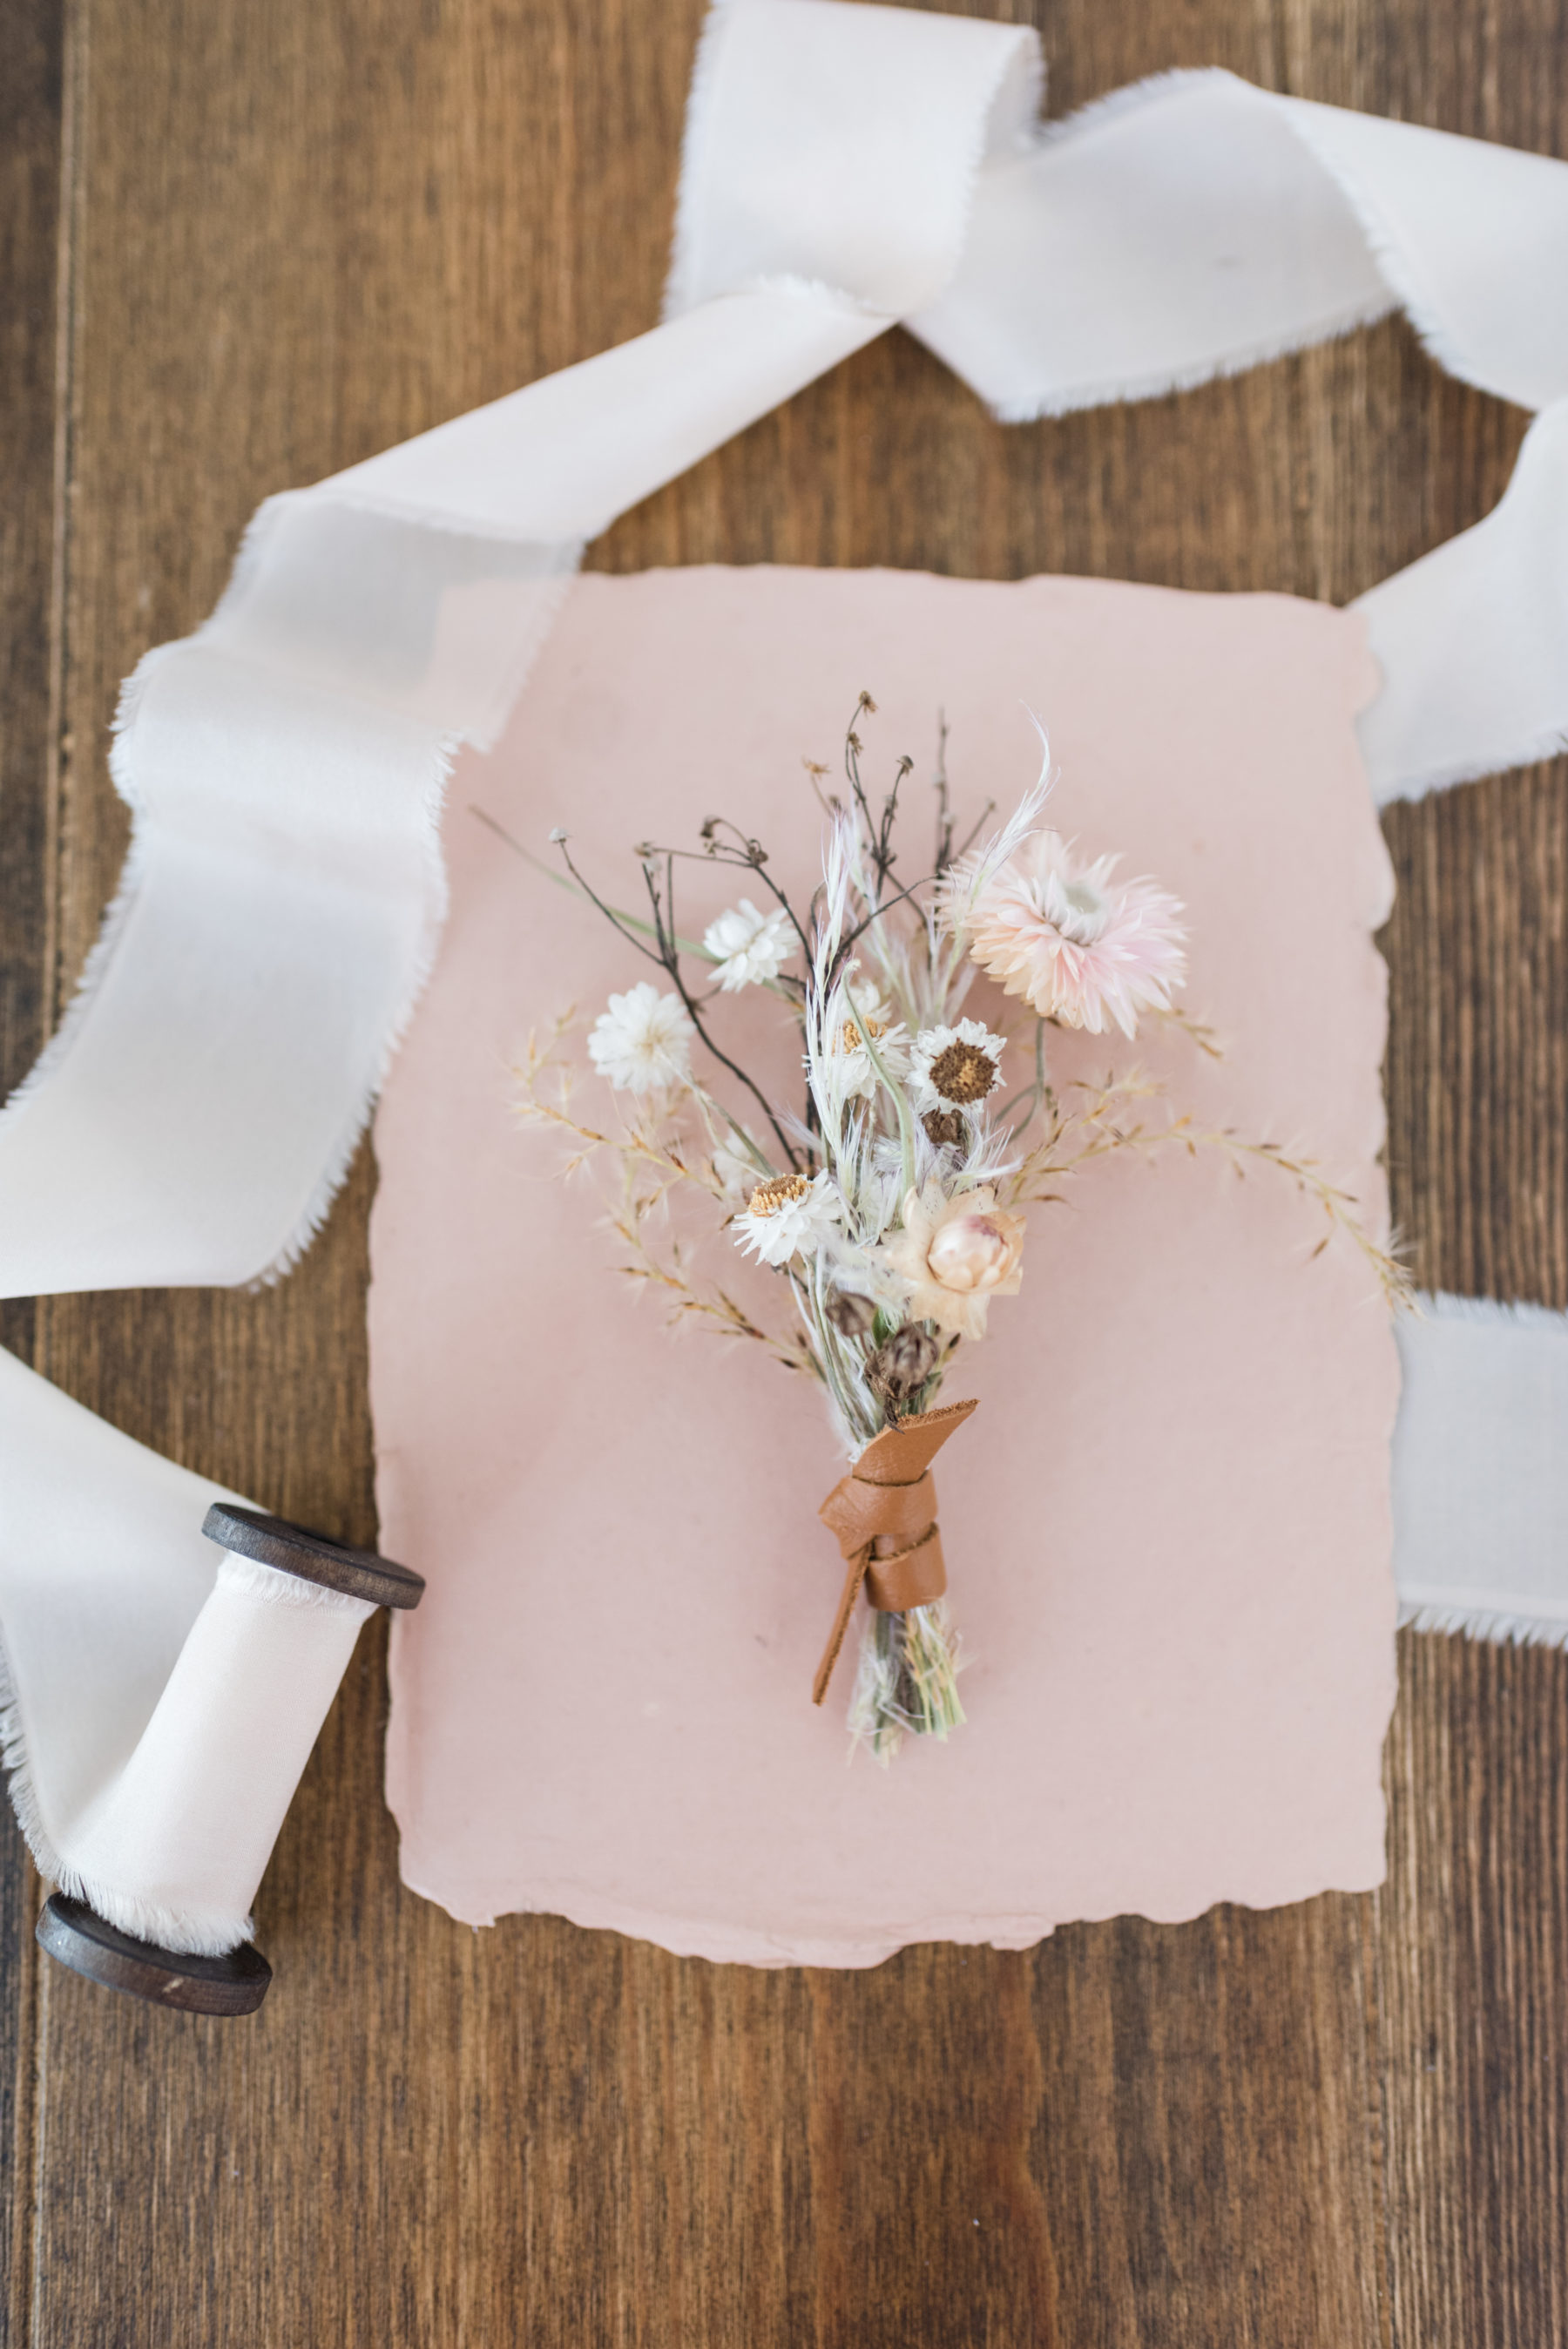 Organic Wedding Bouquet: Organic Eco-Friendly Wedding Styled Shoot featured on Nashville Bride Guide